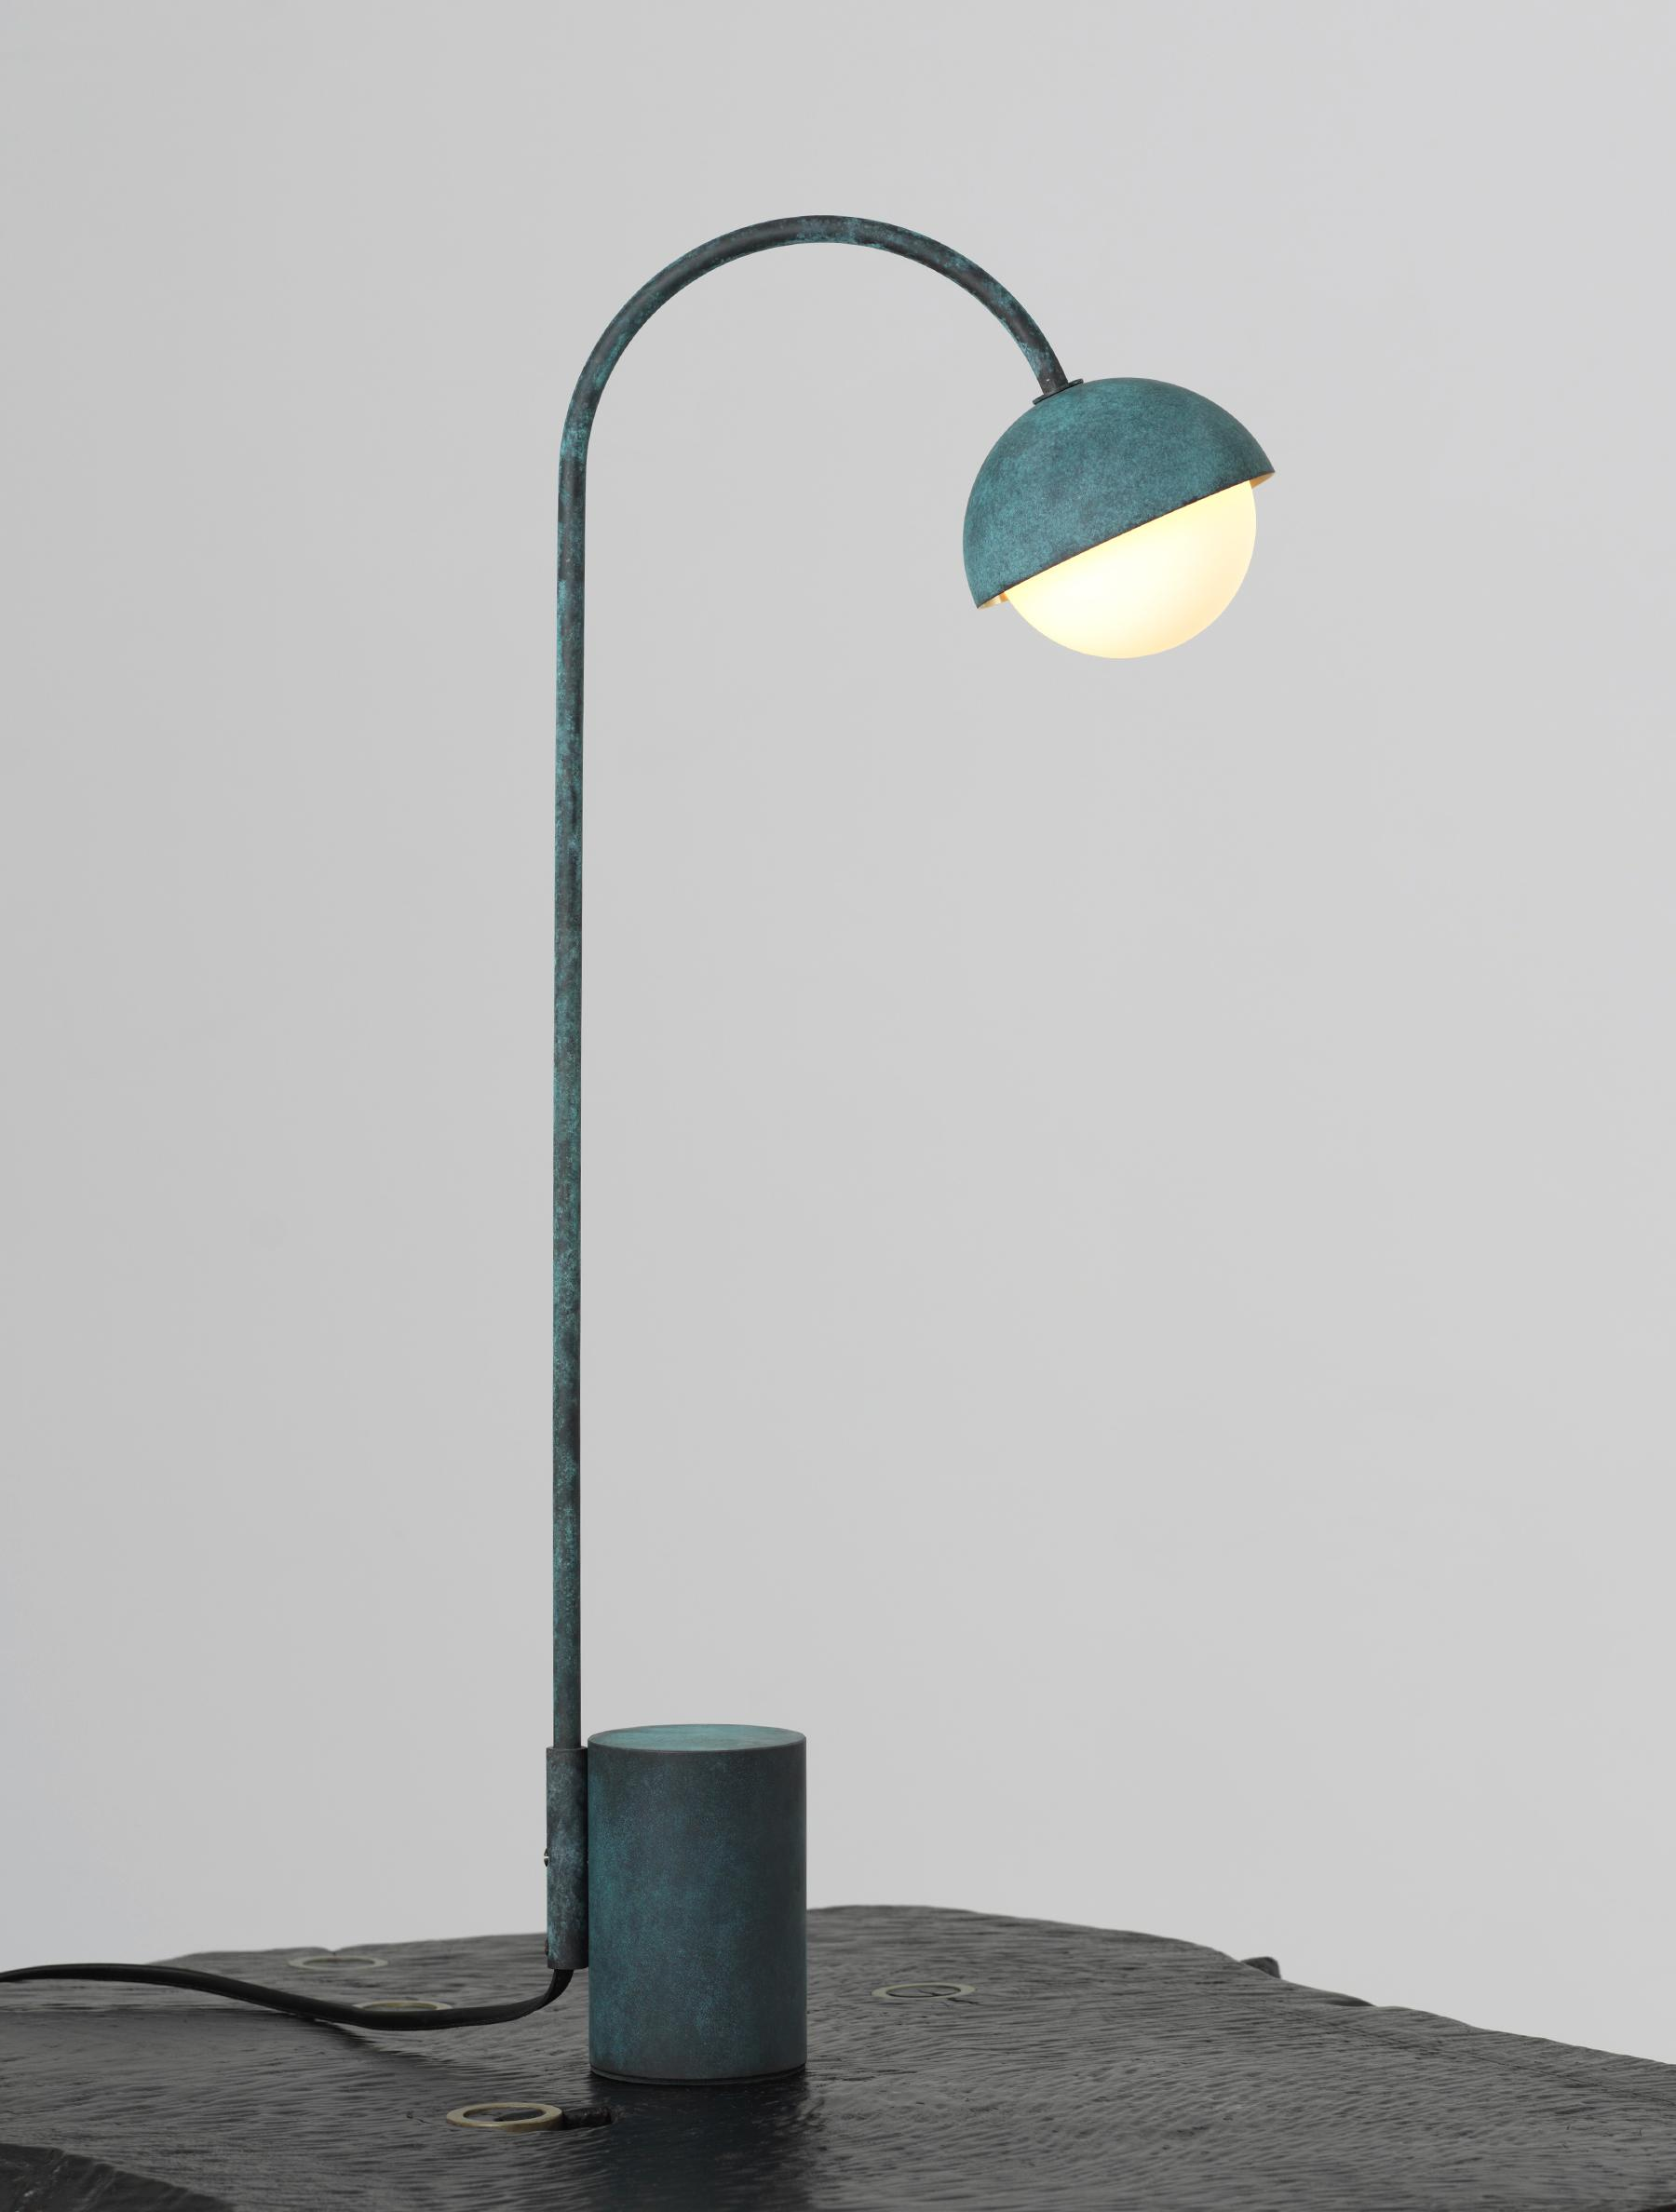 Contour Table Lamp shown in Verdigris, and Matte White Globe